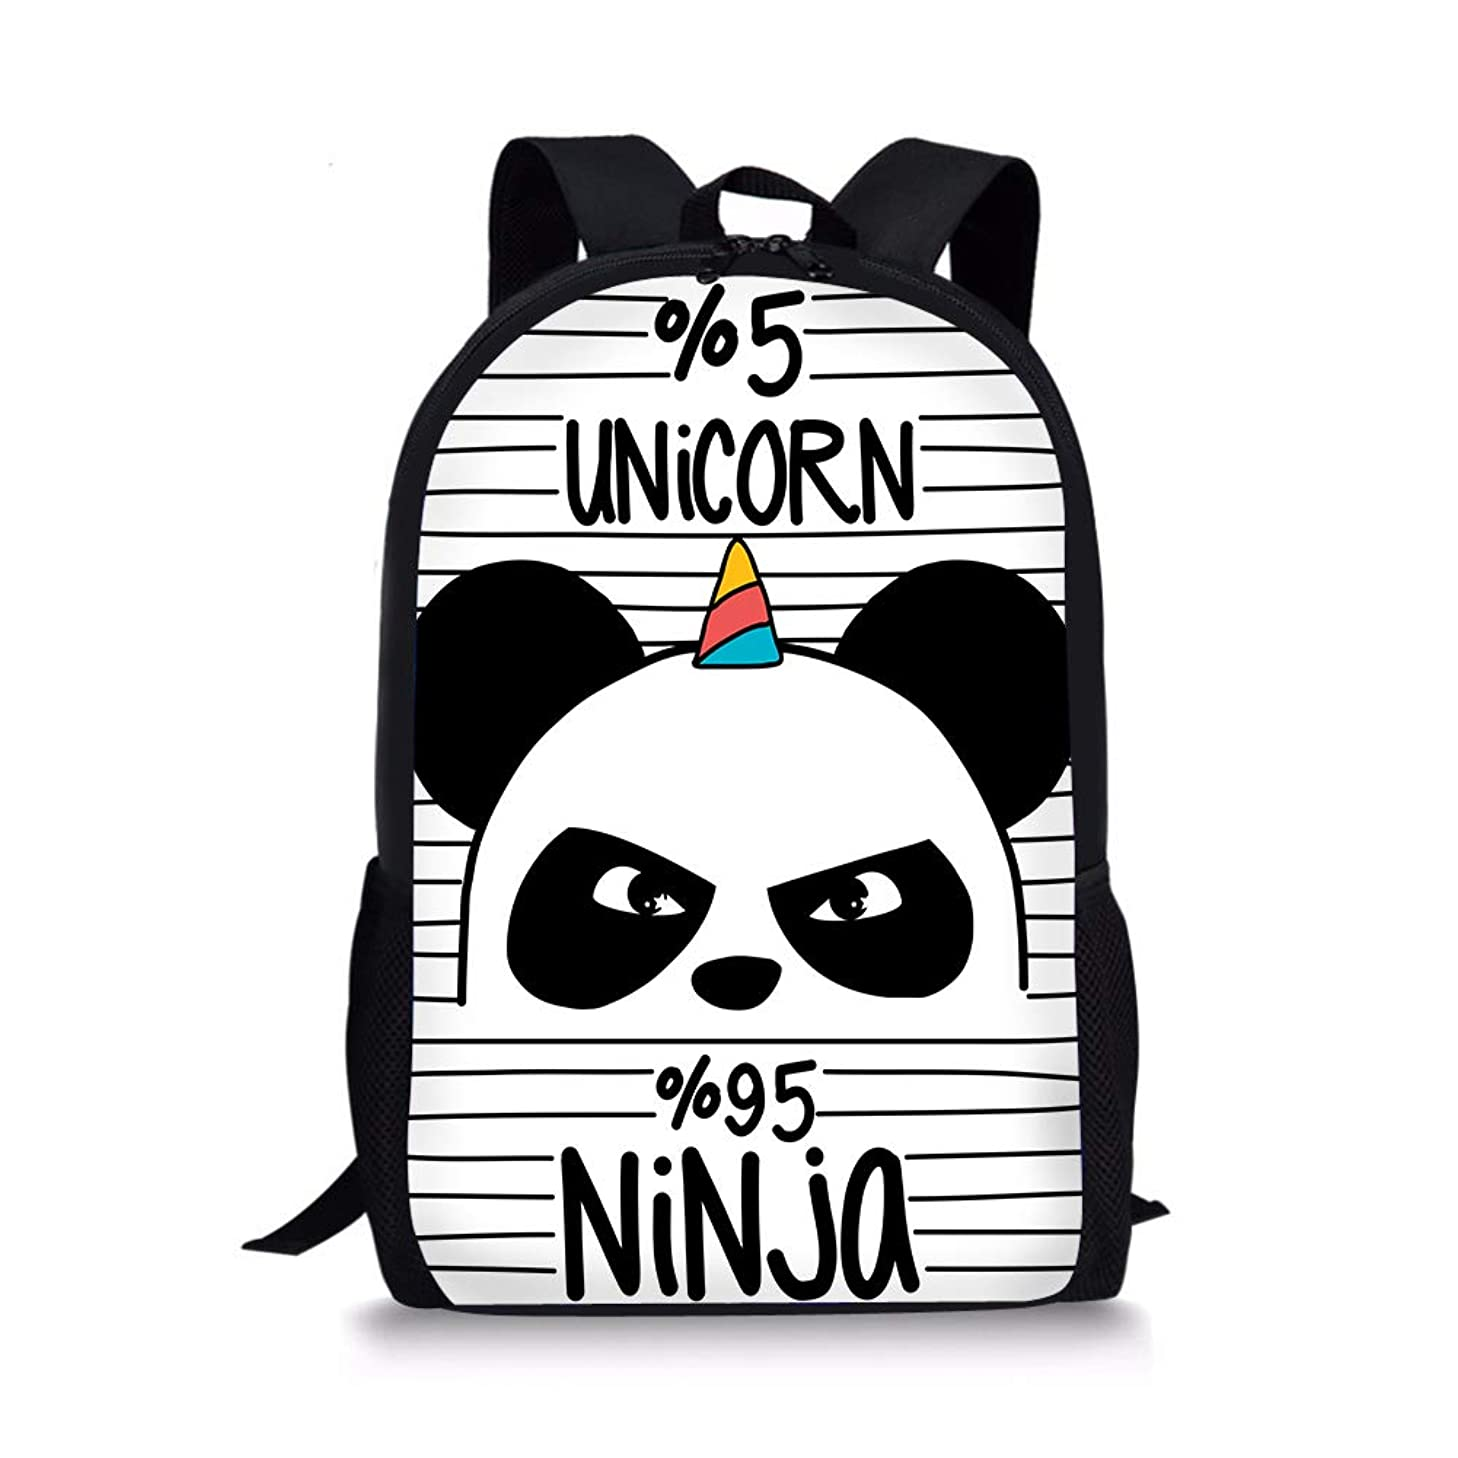 PrelerDIY Unicorn Panda Kids Backpack School Children Book Bag Rucksack Lightweight Daypack for Boys Girls 17 Inch